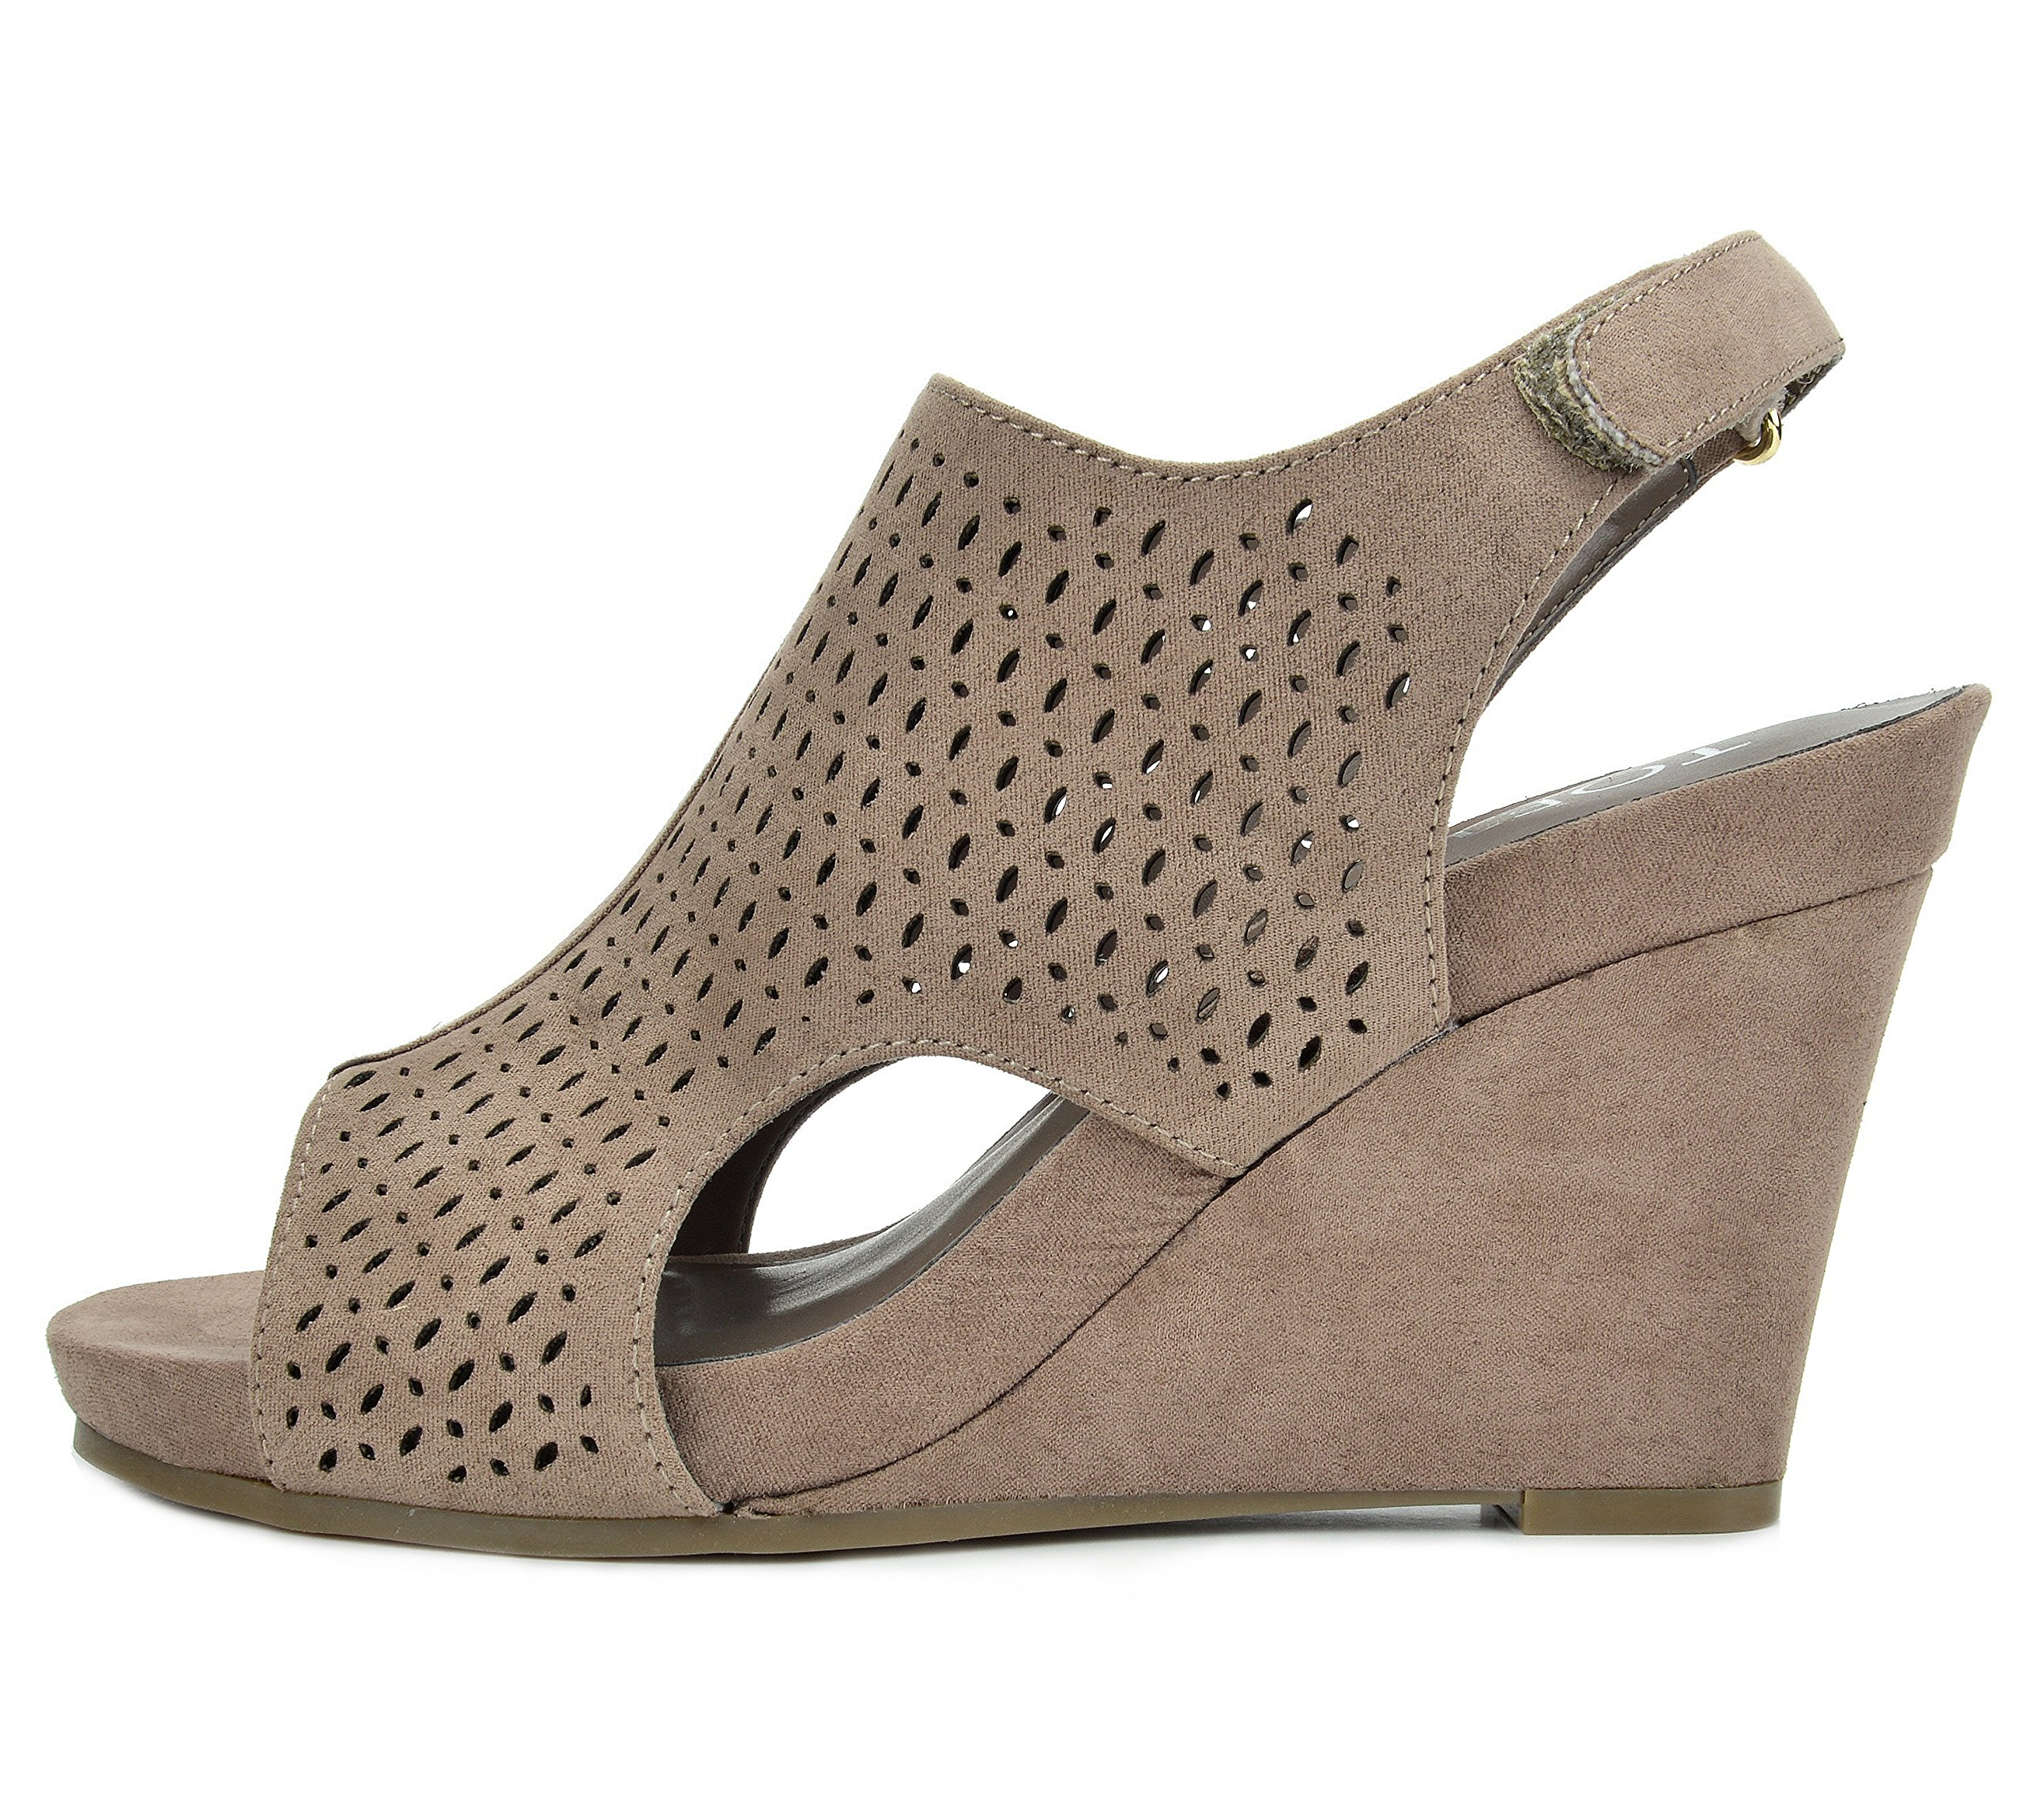 TOETOS Women's Solsoft-6 Taupe Mid Heel Platform Wedges Sandals - 9.5 M US by TOETOS (Image #3)